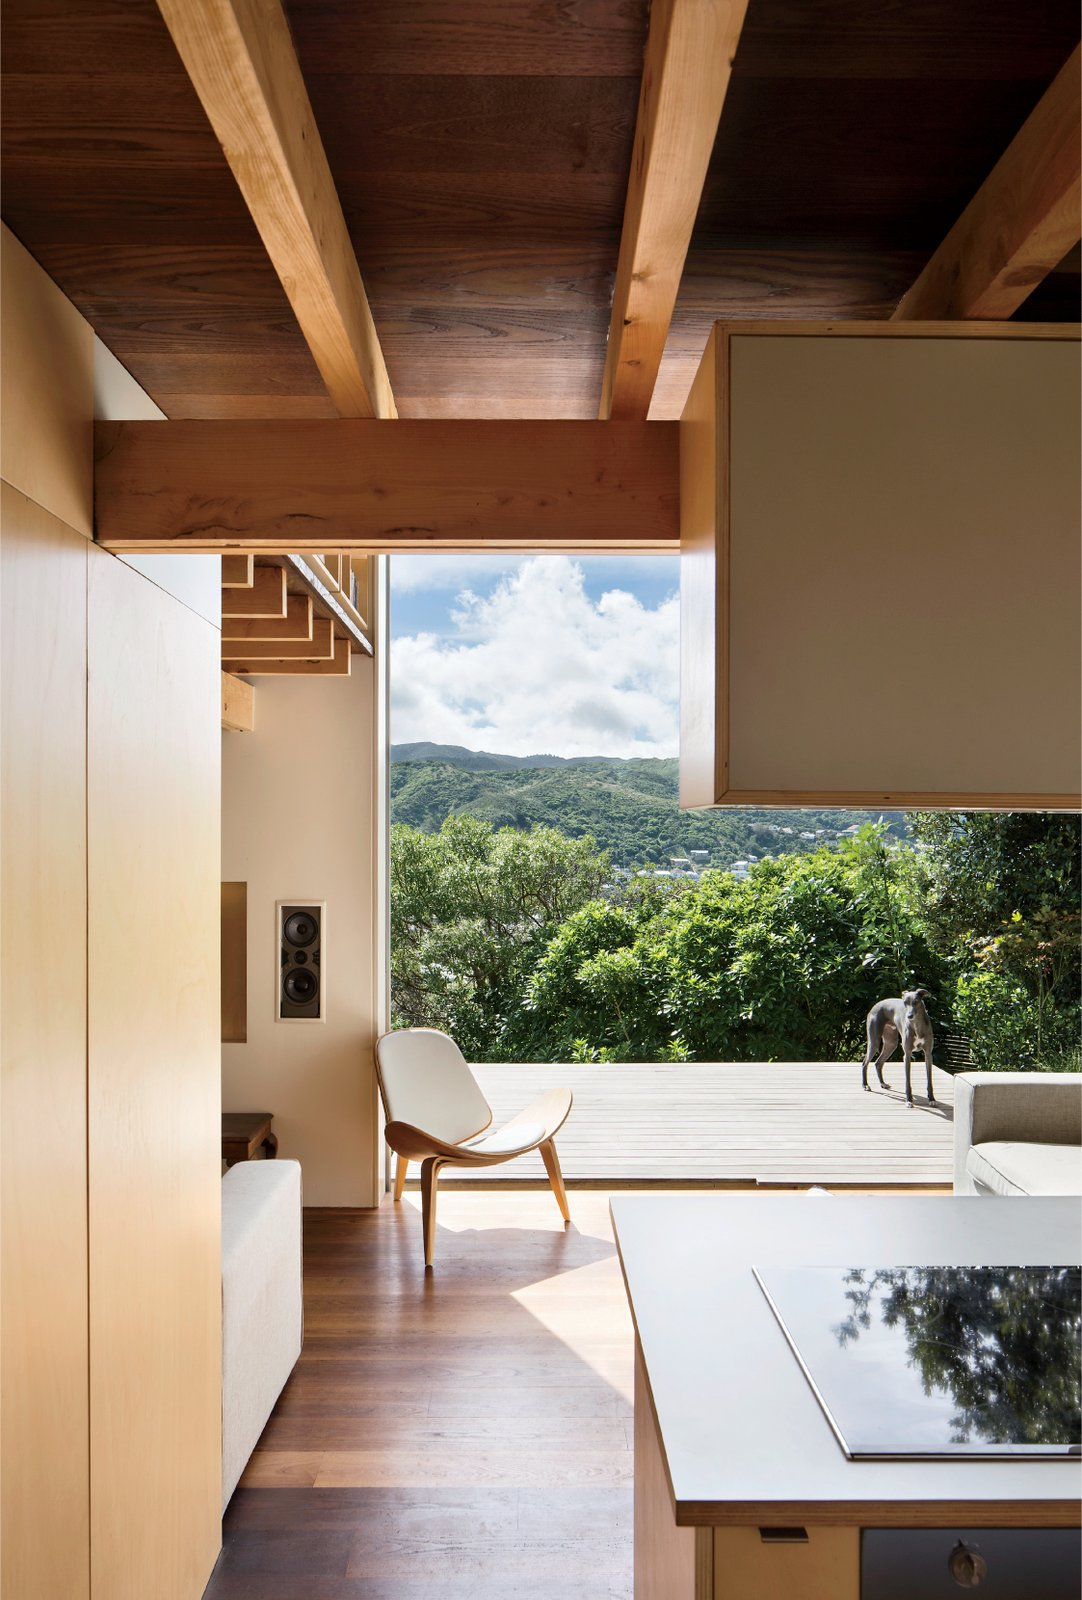 Living Room, Chair, Sofa, and Medium Hardwood Floor The home also extends into outdoor panoramas, even—and especially—from the ground floor, where a westward-facing deck cantilevers out into the lush landscape.  Small Spaces from A Home's High Ceilings Are Responsible for Some Impressive Views